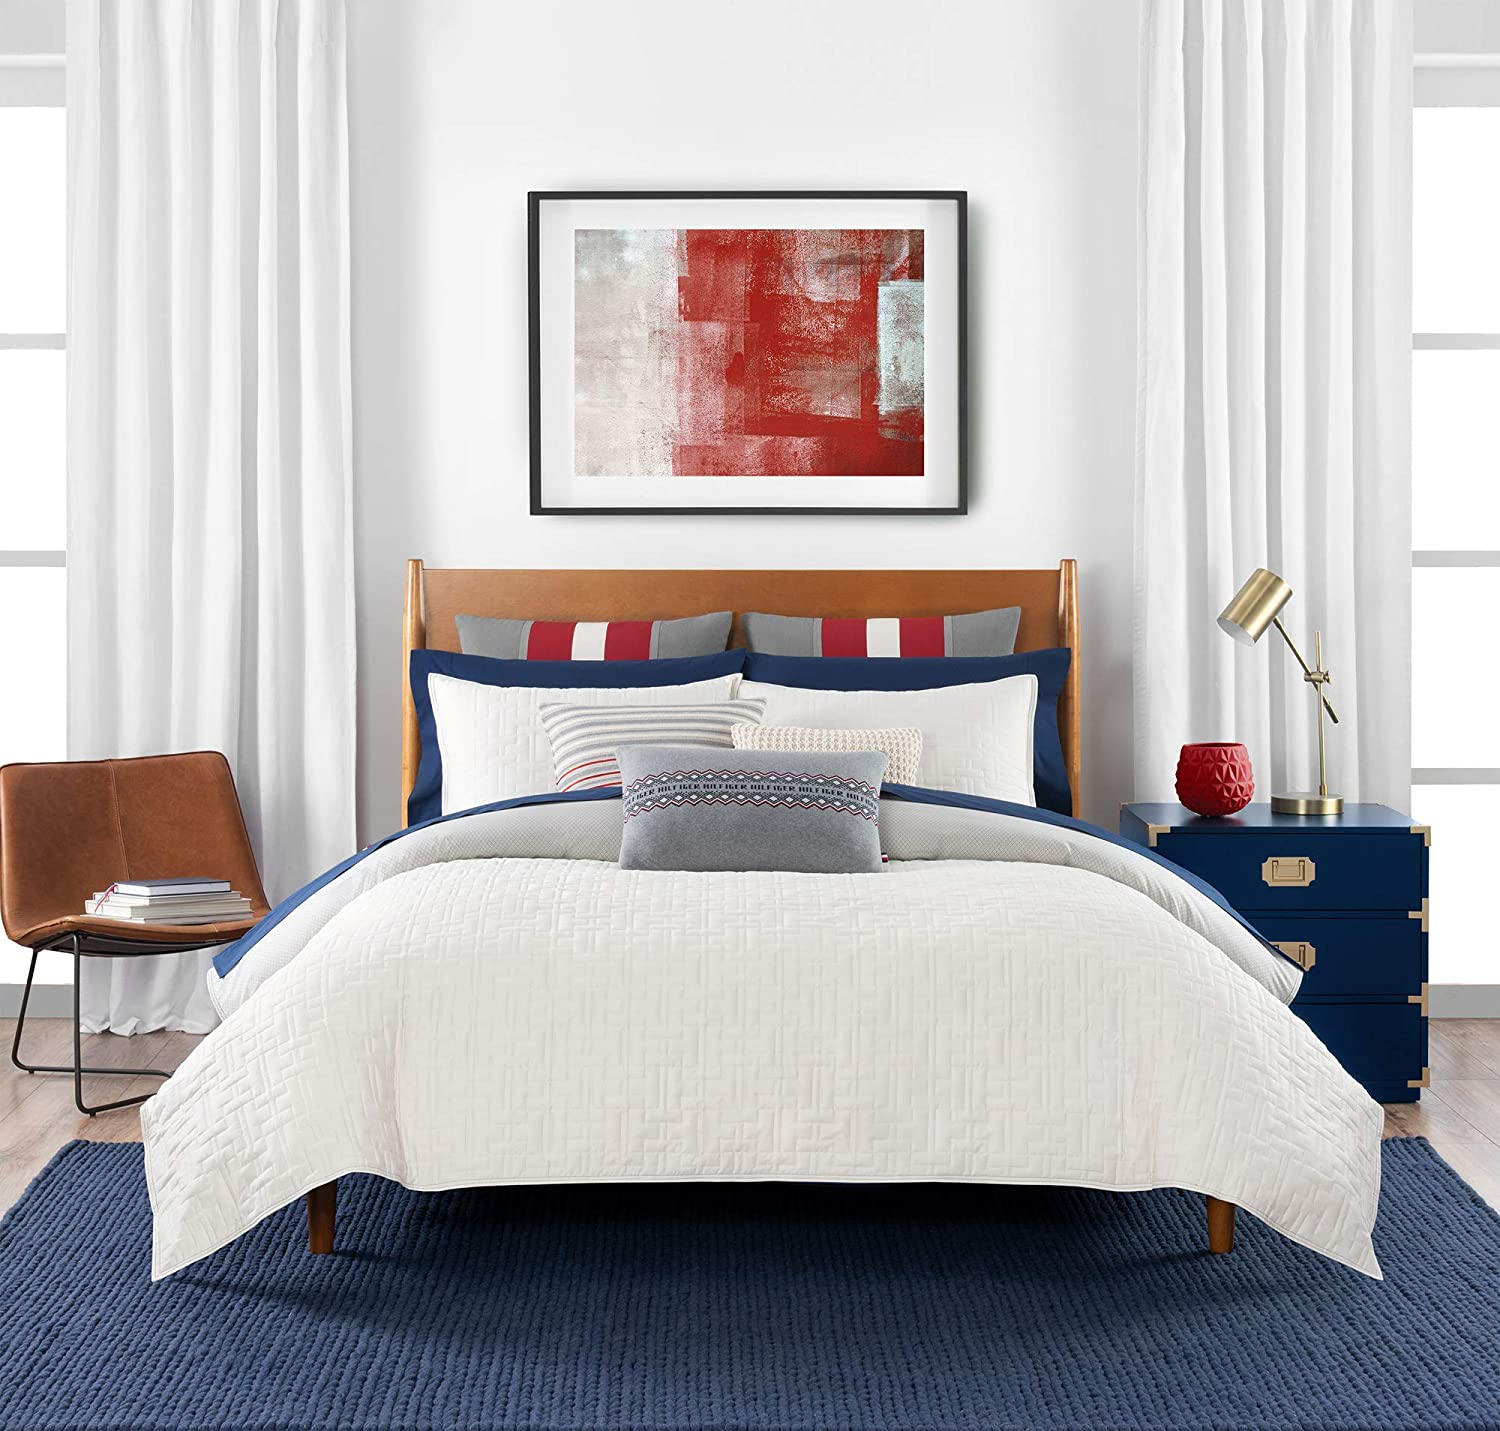 Tommy Hilfiger Quilted Monogram Bedding Collection Comforter Set, Full Queen, Ivory